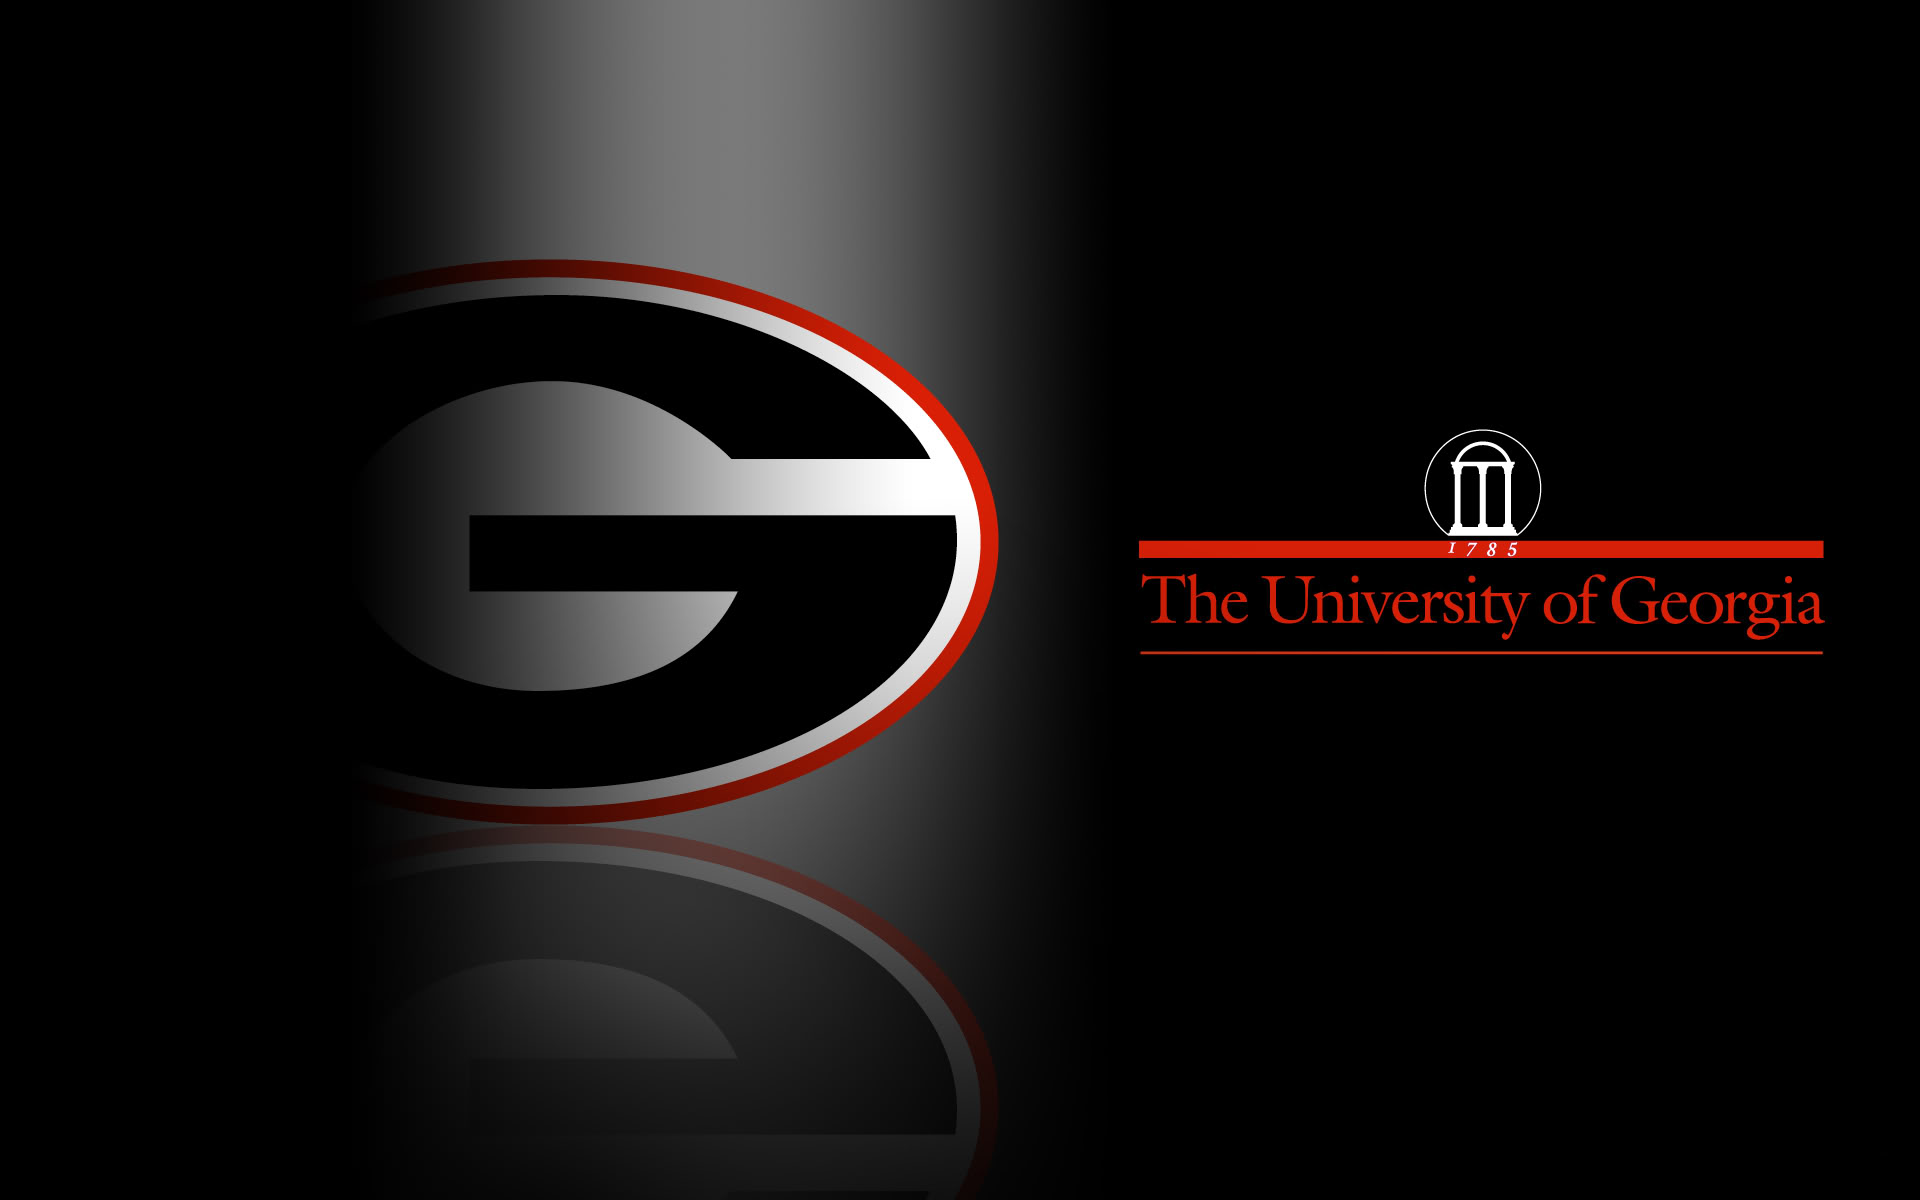 University of Georgia Wallpaper